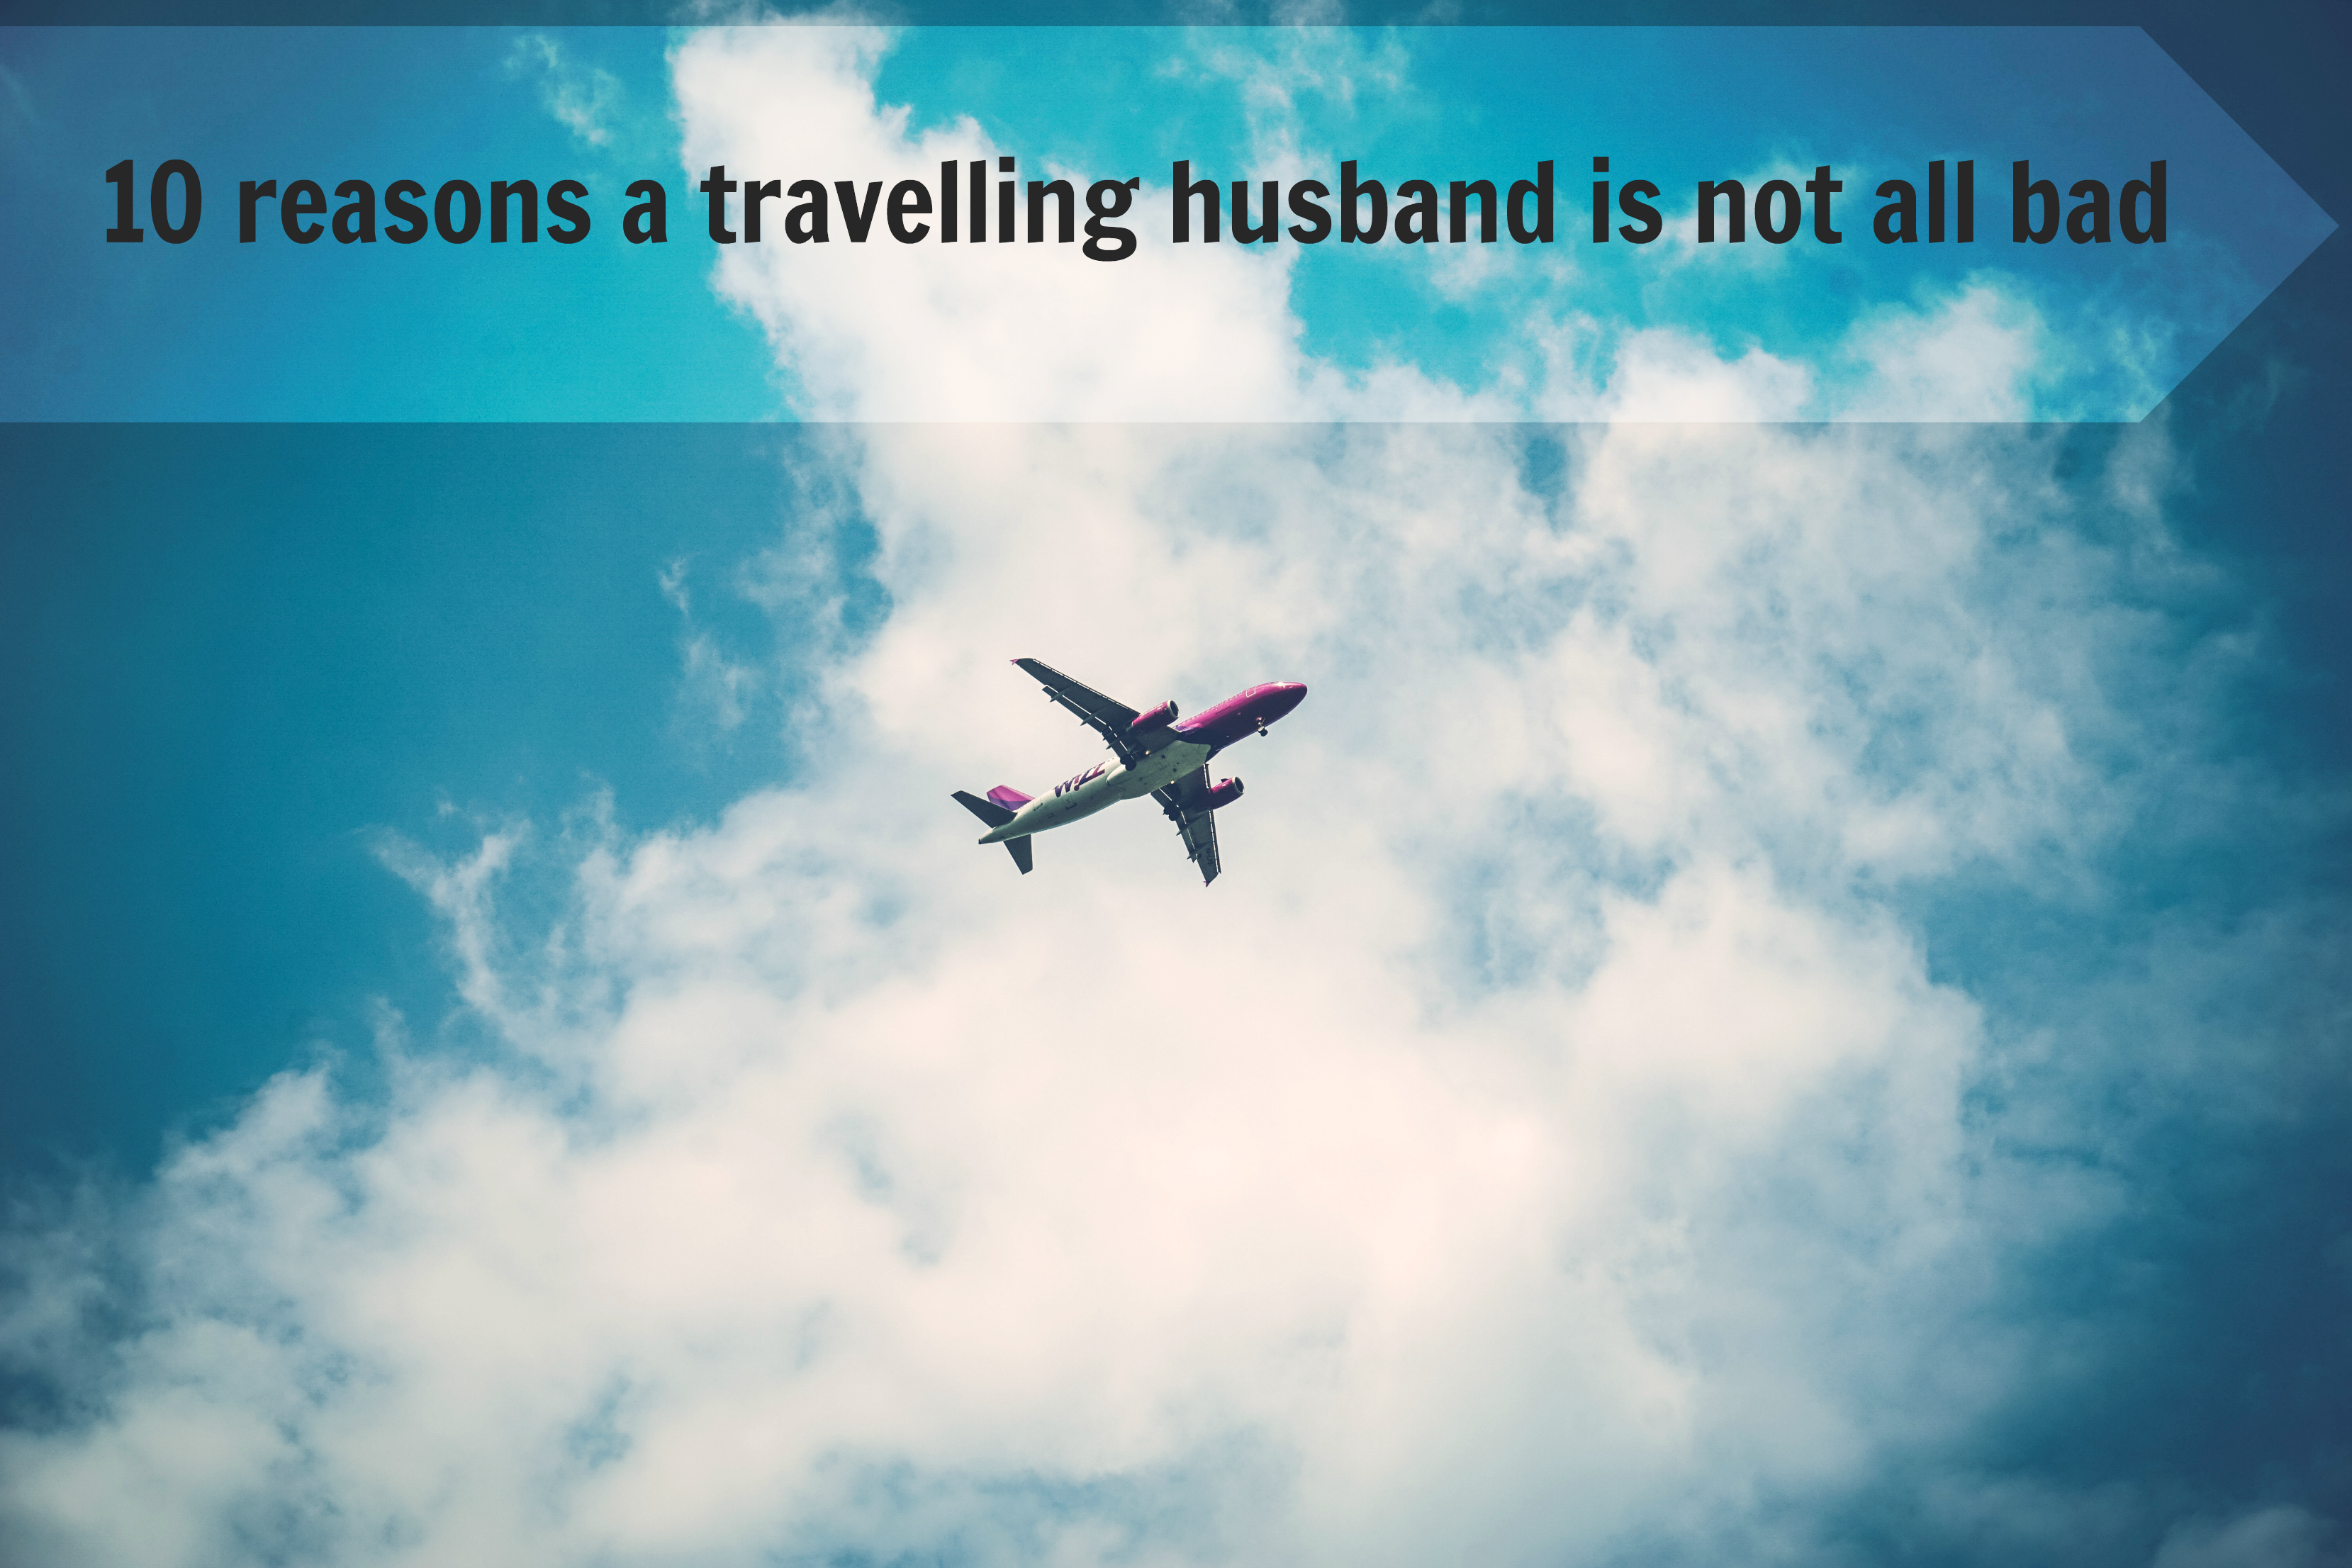 10 reasons a travelling husband is not all bad